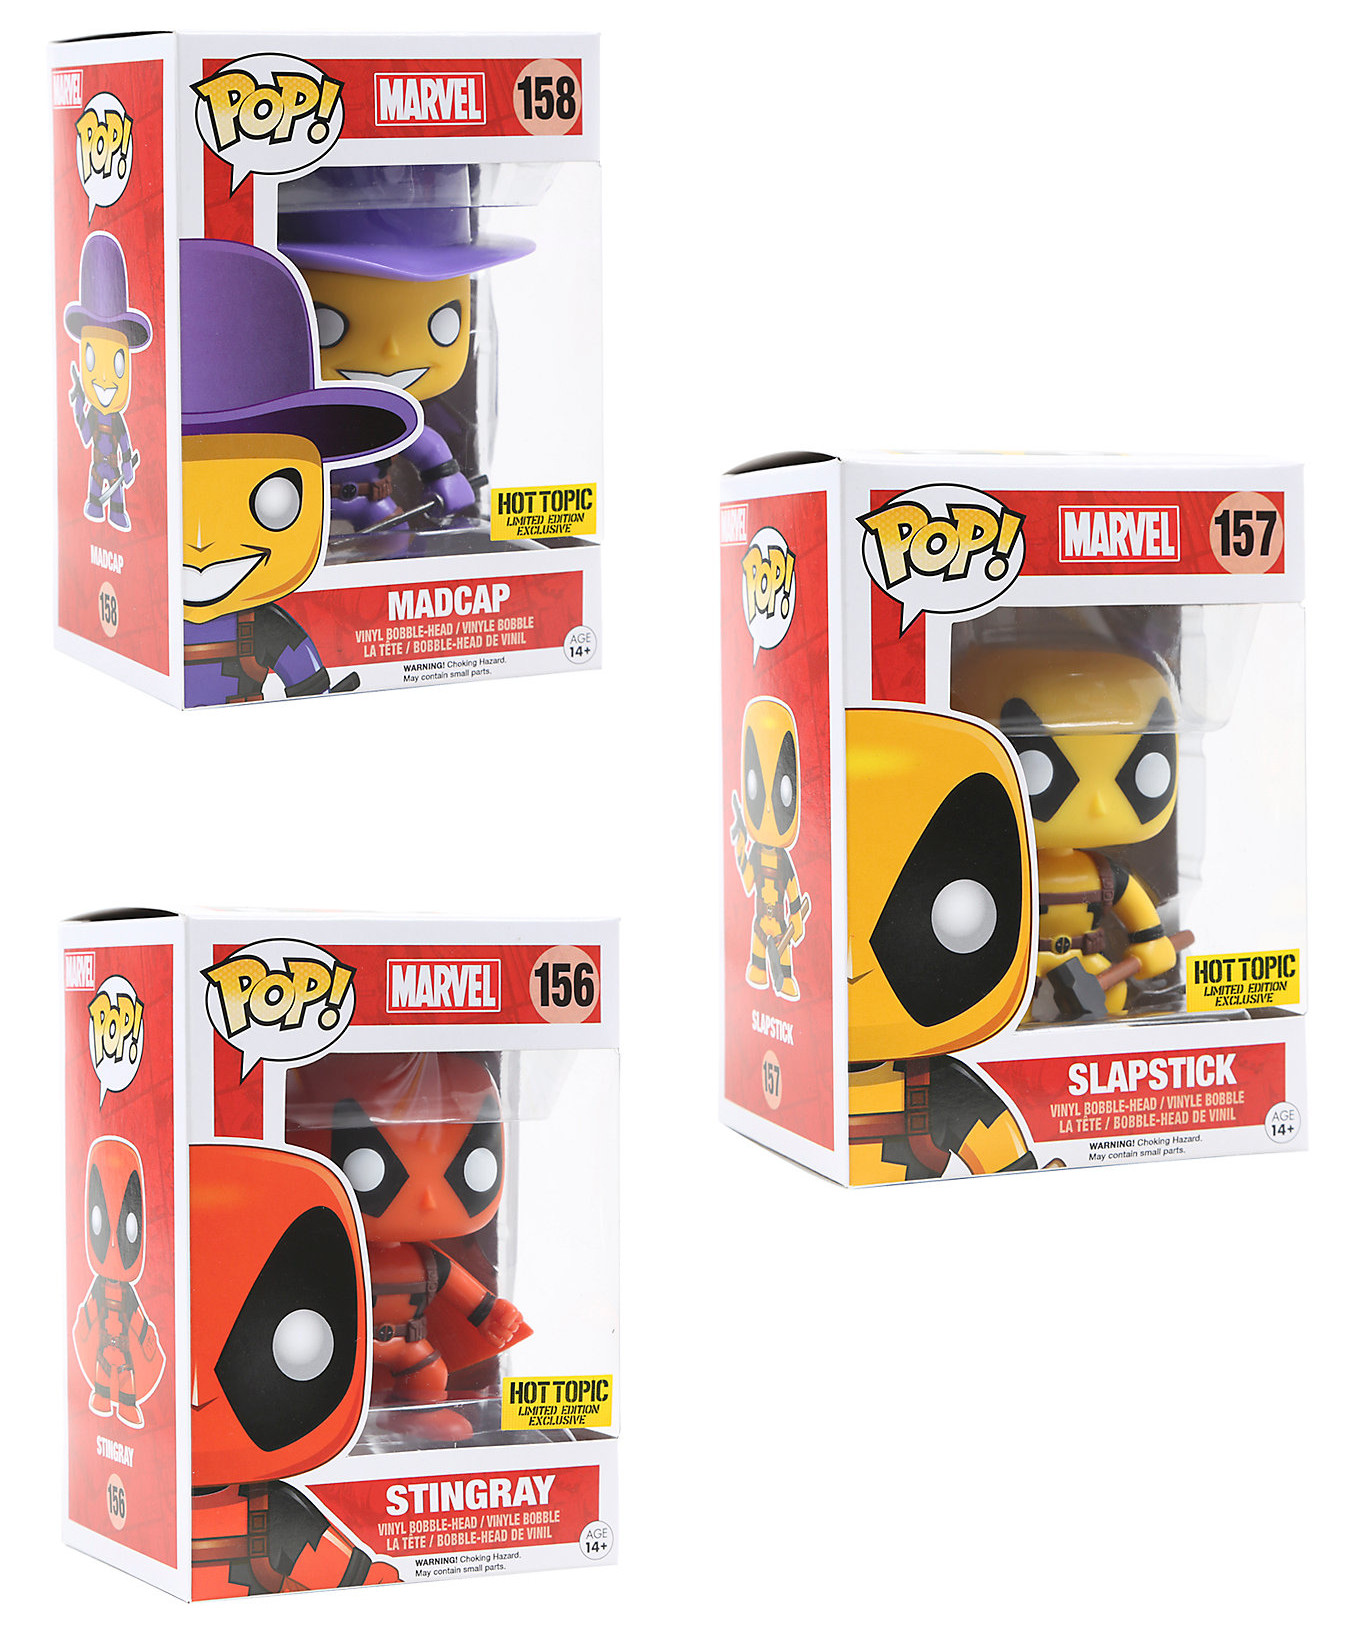 Toys From Hot Topic : Hot topic funko deadpool mystery pop vinyls series